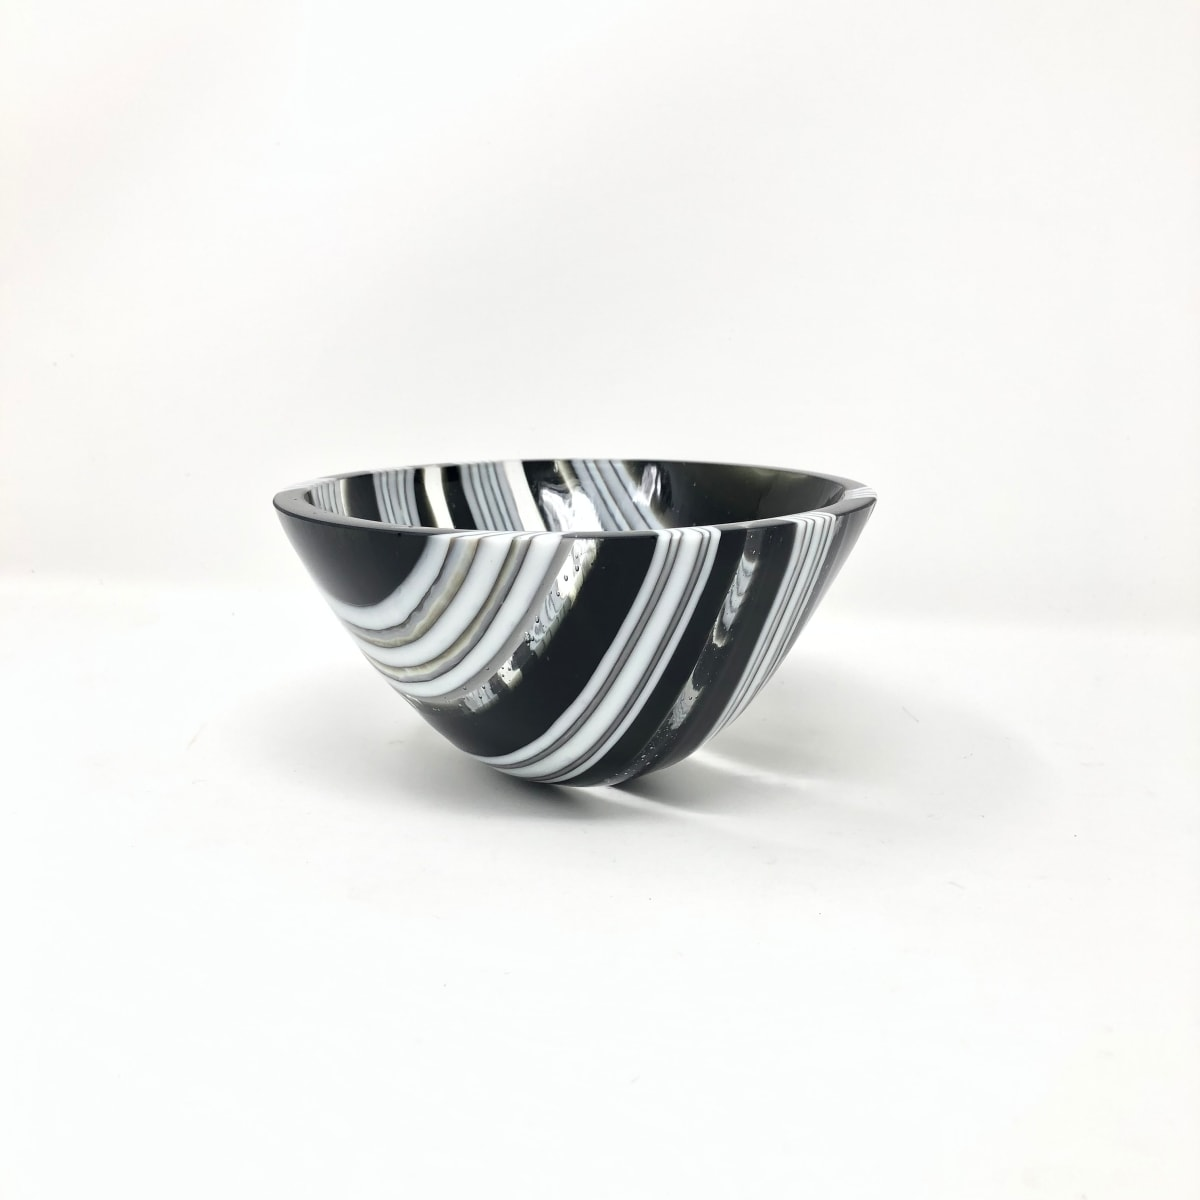 SHI058, Black and White drop vessel by Hilary Shields